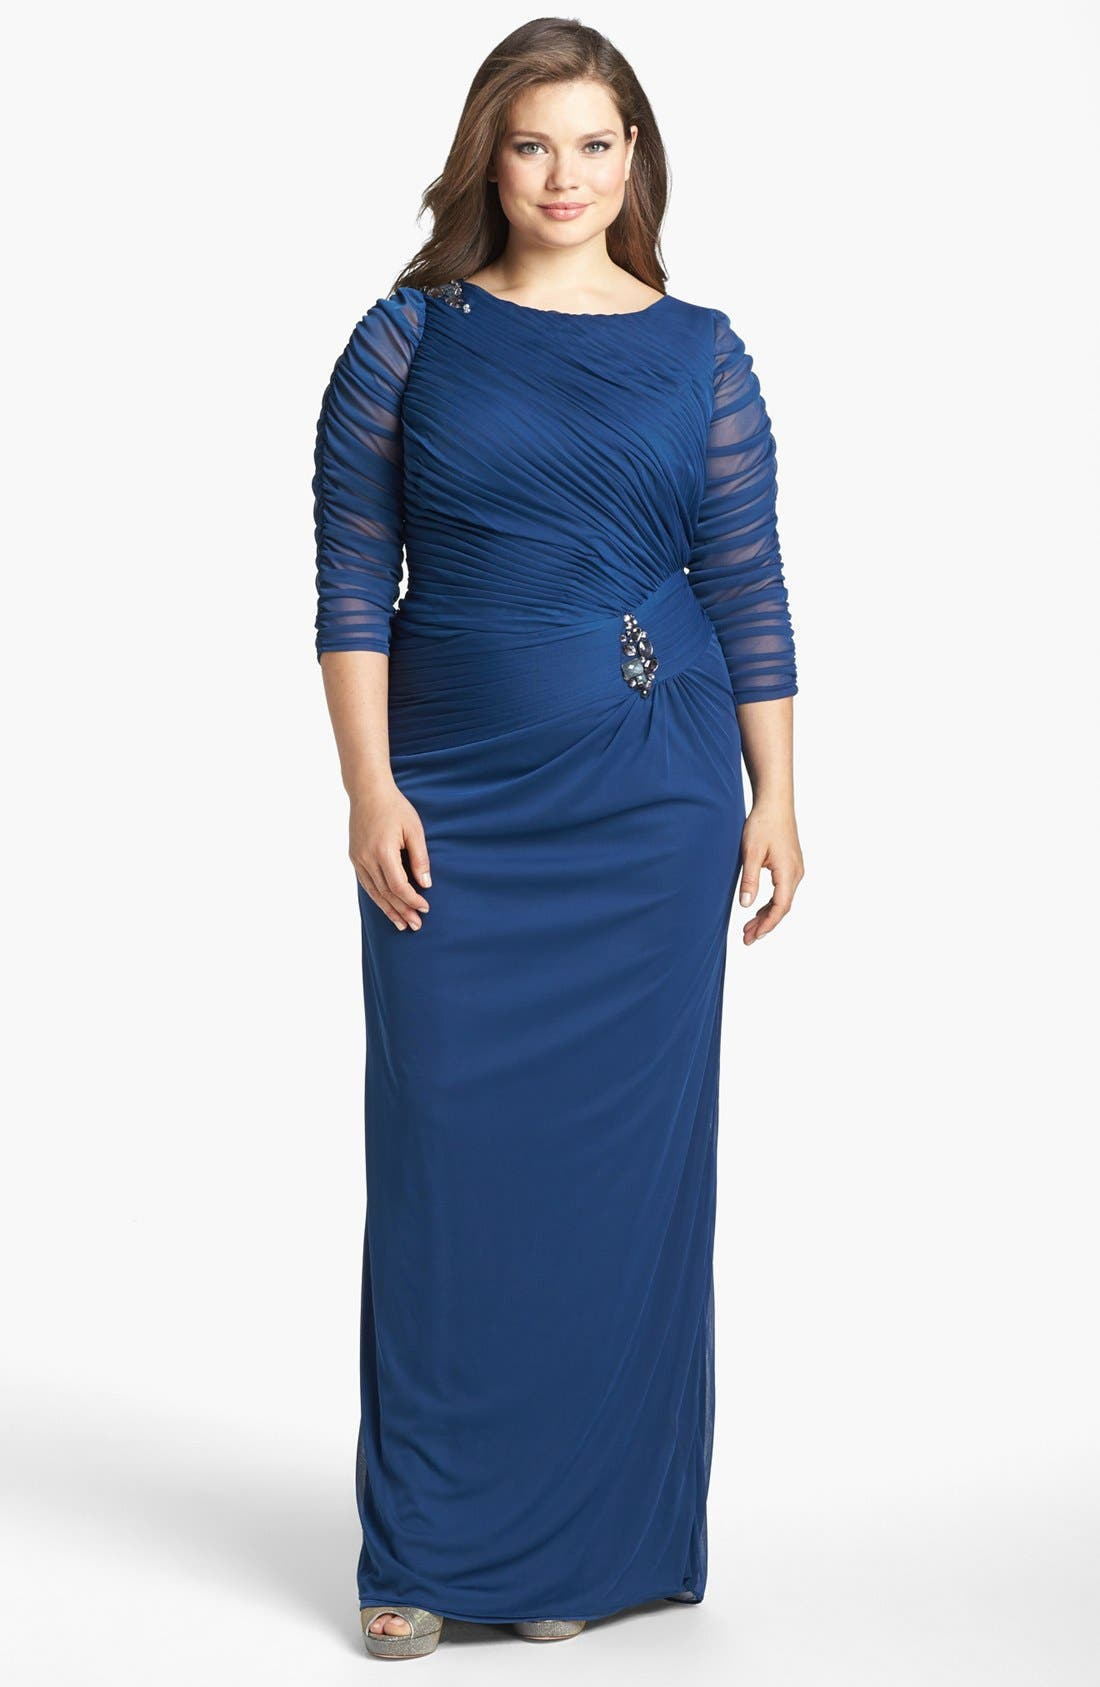 Main Image - Adrianna Papell Brooch Embellished Ruched Mesh Gown (Plus Size)